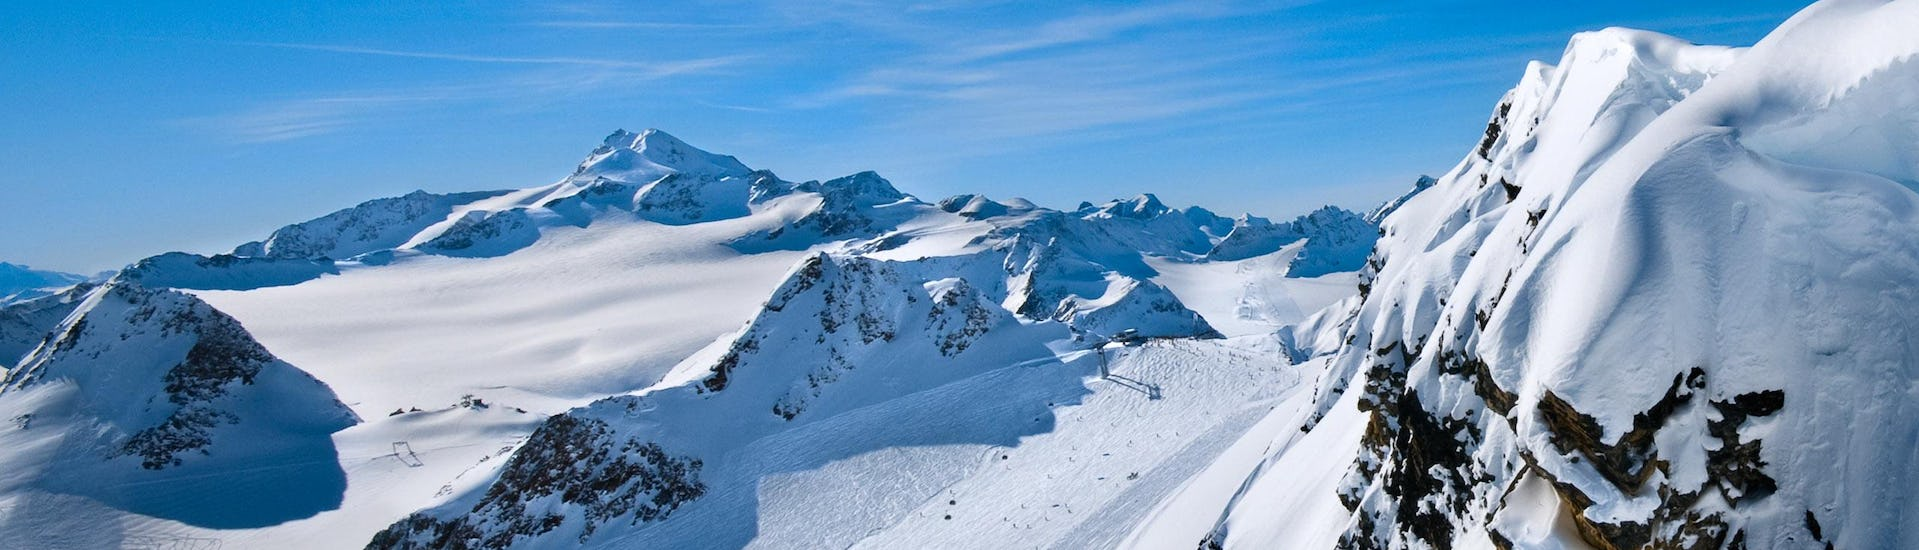 A view of a snowy mountain top in the ski resort of Arc 1800, where ski schools gather to start their ski lessons.